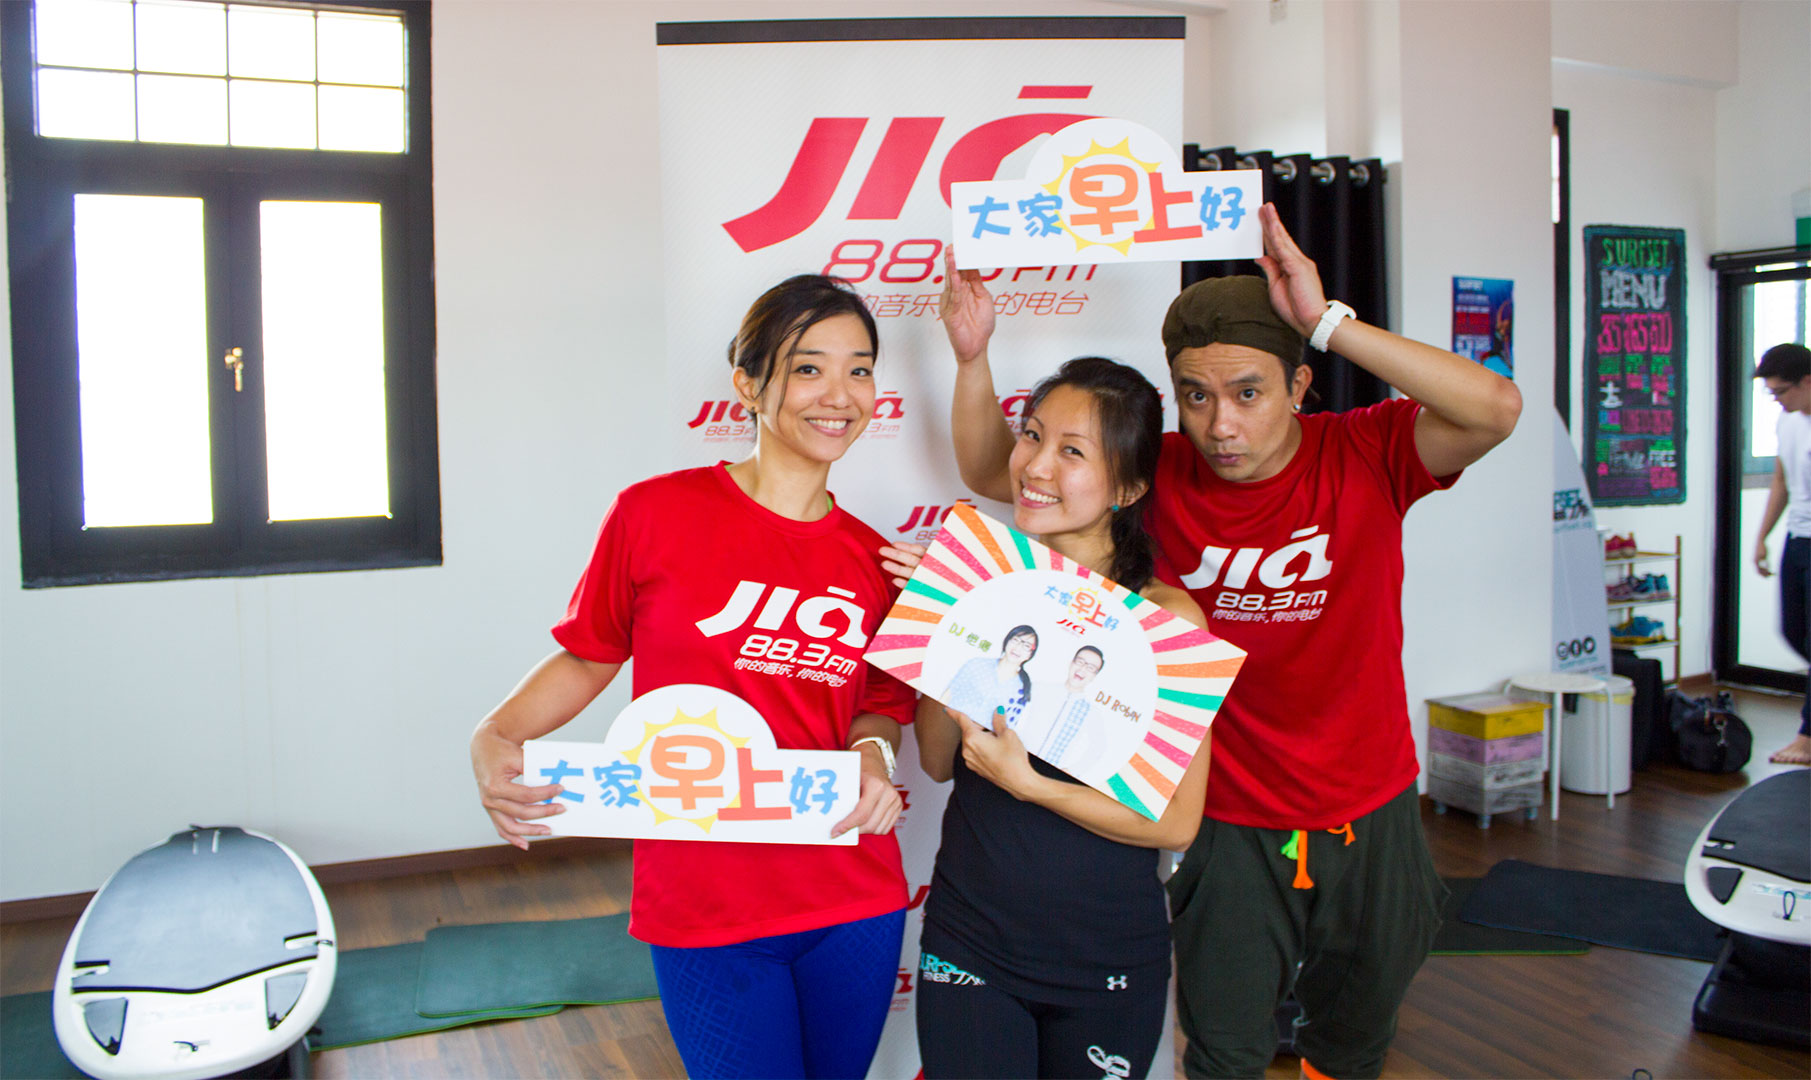 883 Jia FM Good Morning Show DJ Robin and Kai Ying with SURFSET Fitness Instructor Shuyi